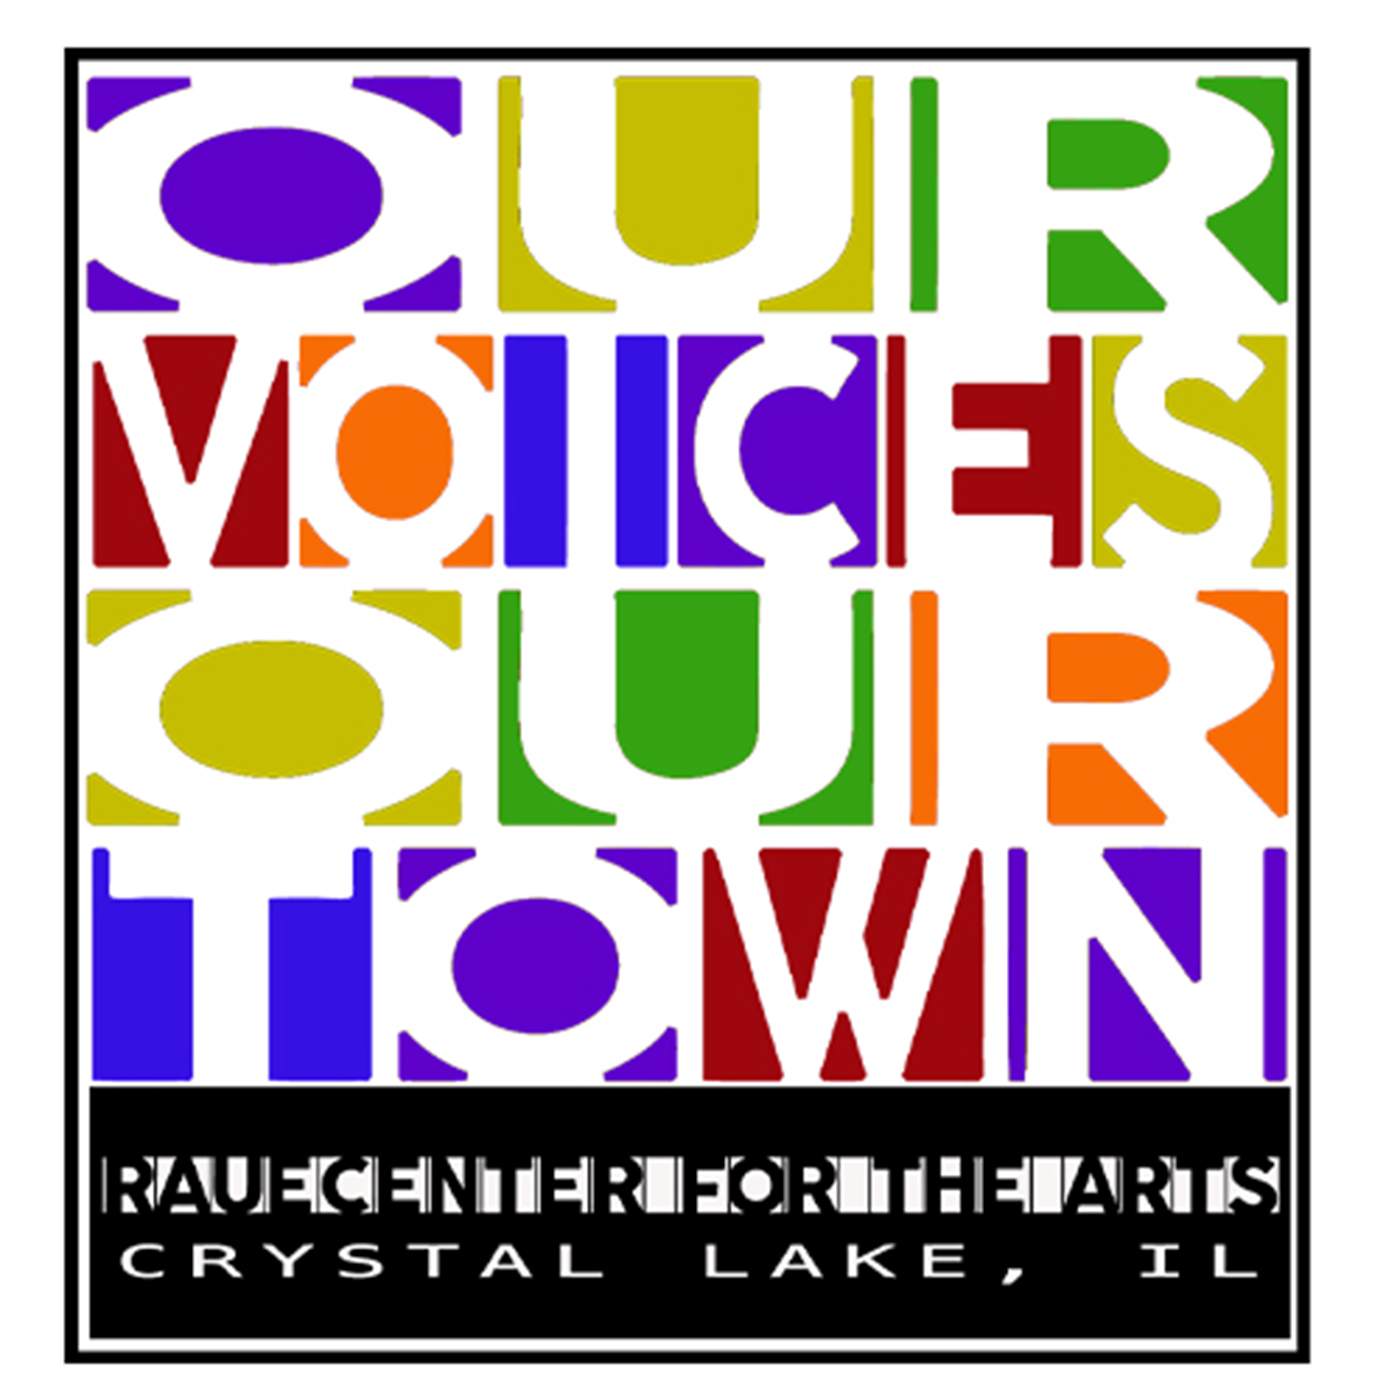 Our Voices, Our Town